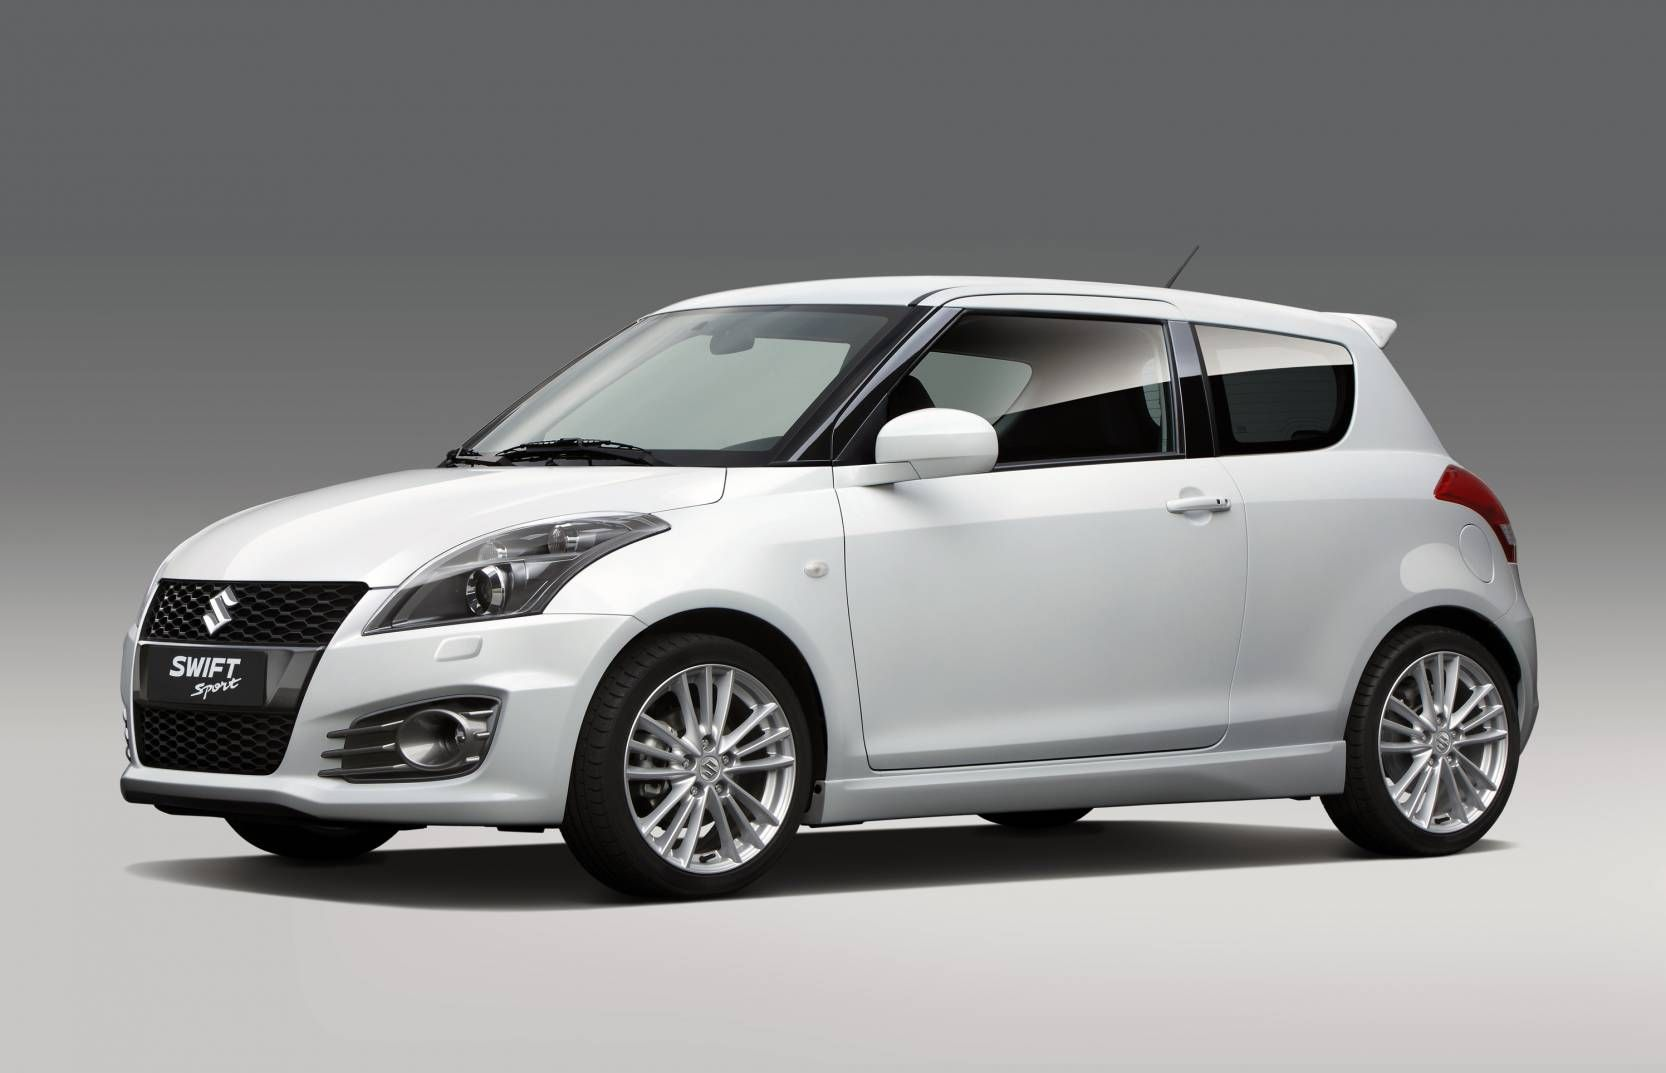 Suzuki swift sport 2013 pictures to pin on pinterest - 2012 Suzuki Swift Sport 1